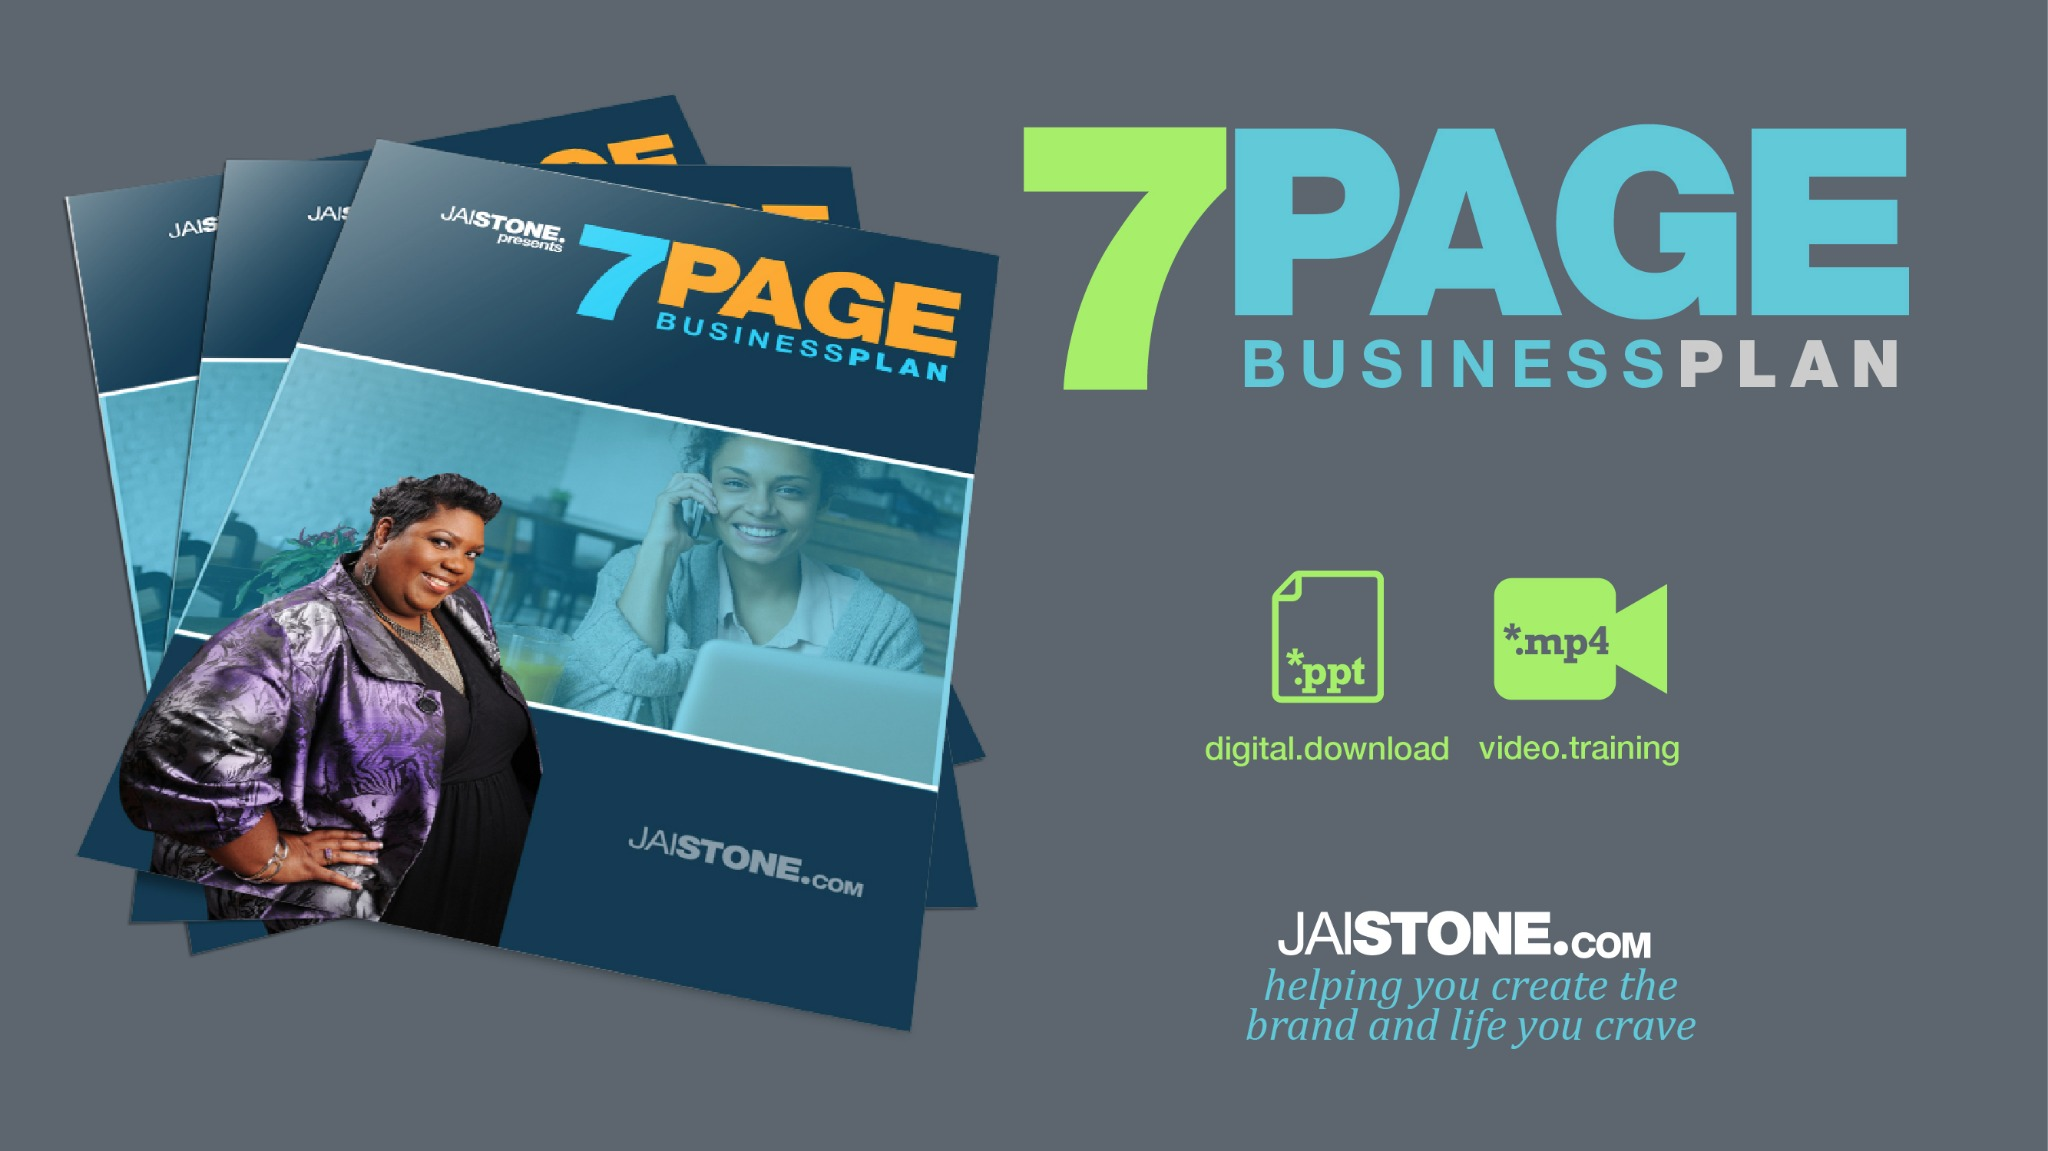 7 Page Business Plan Template + Training Video (designed in POWERPOINT)